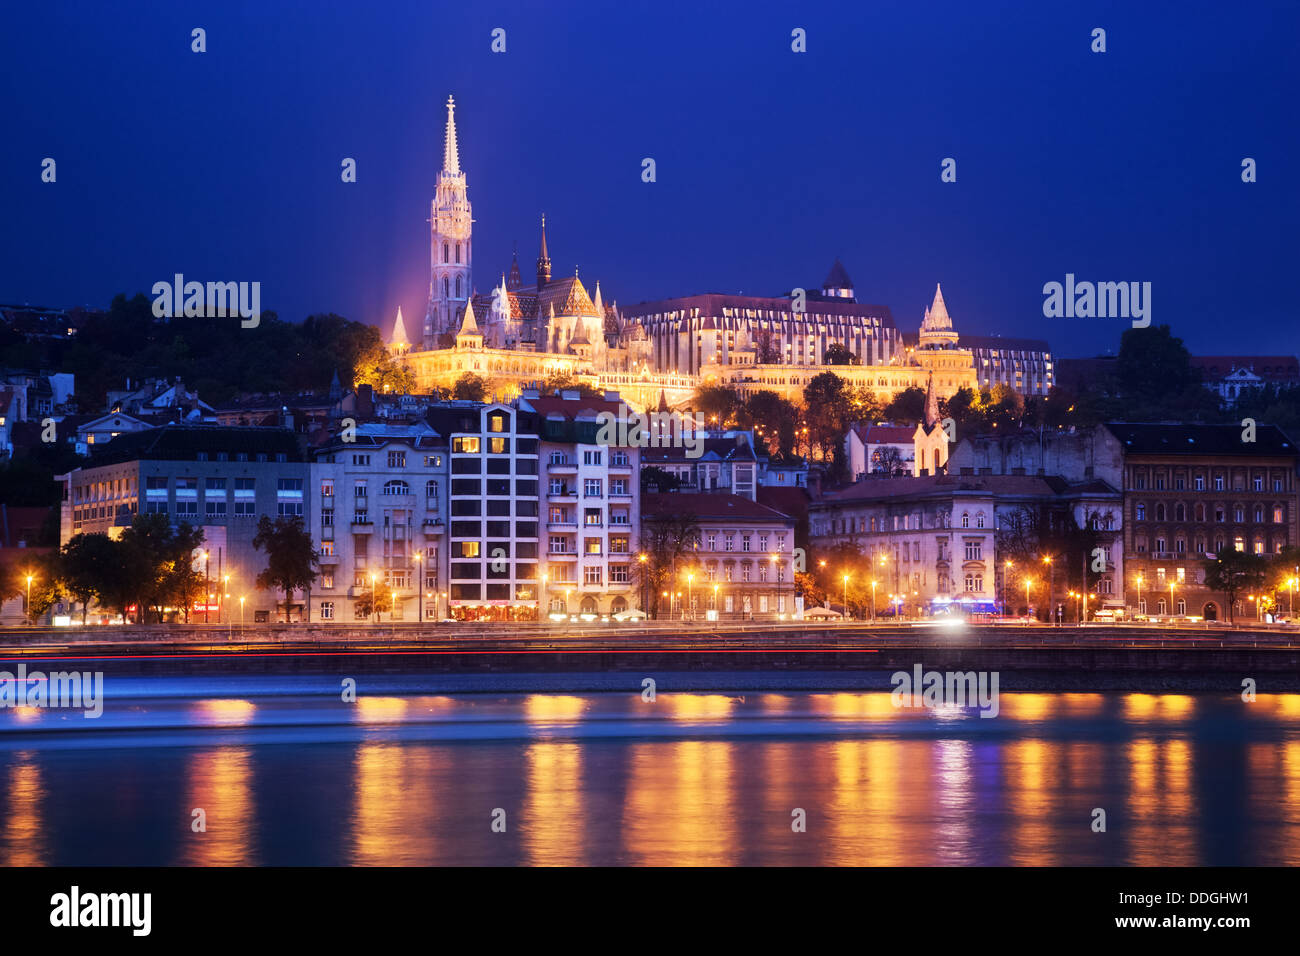 Budapest, Hungary - Fisherman's Bastion and Matthias Church on the Buda Castle hill by Danube River Stock Photo